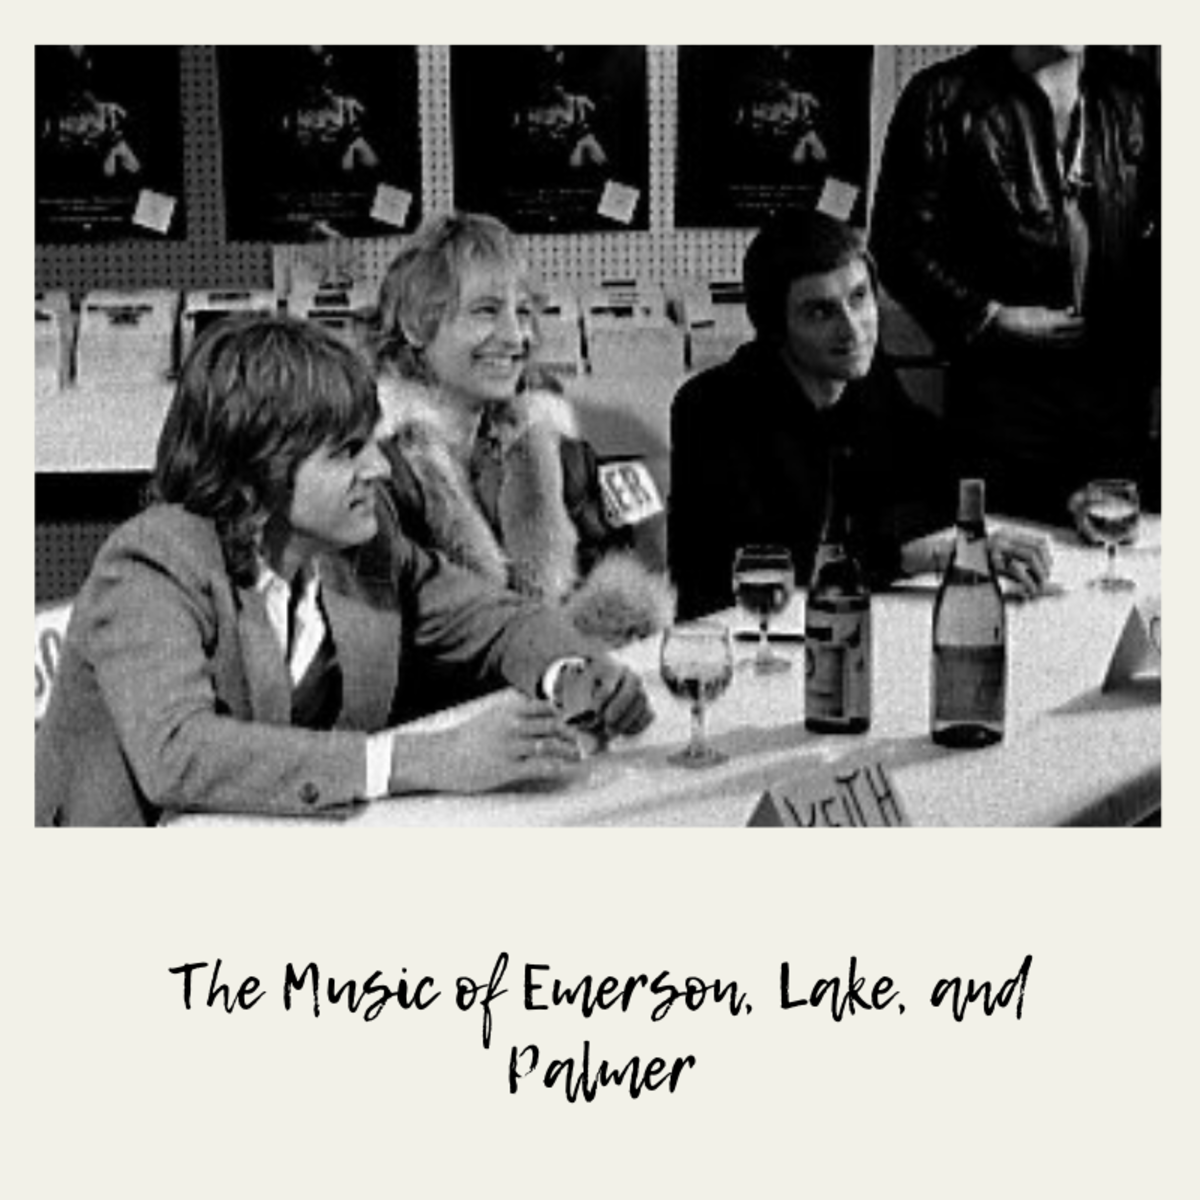 Classic Rock Albums: The Music of Emerson, Lake, and Palmer